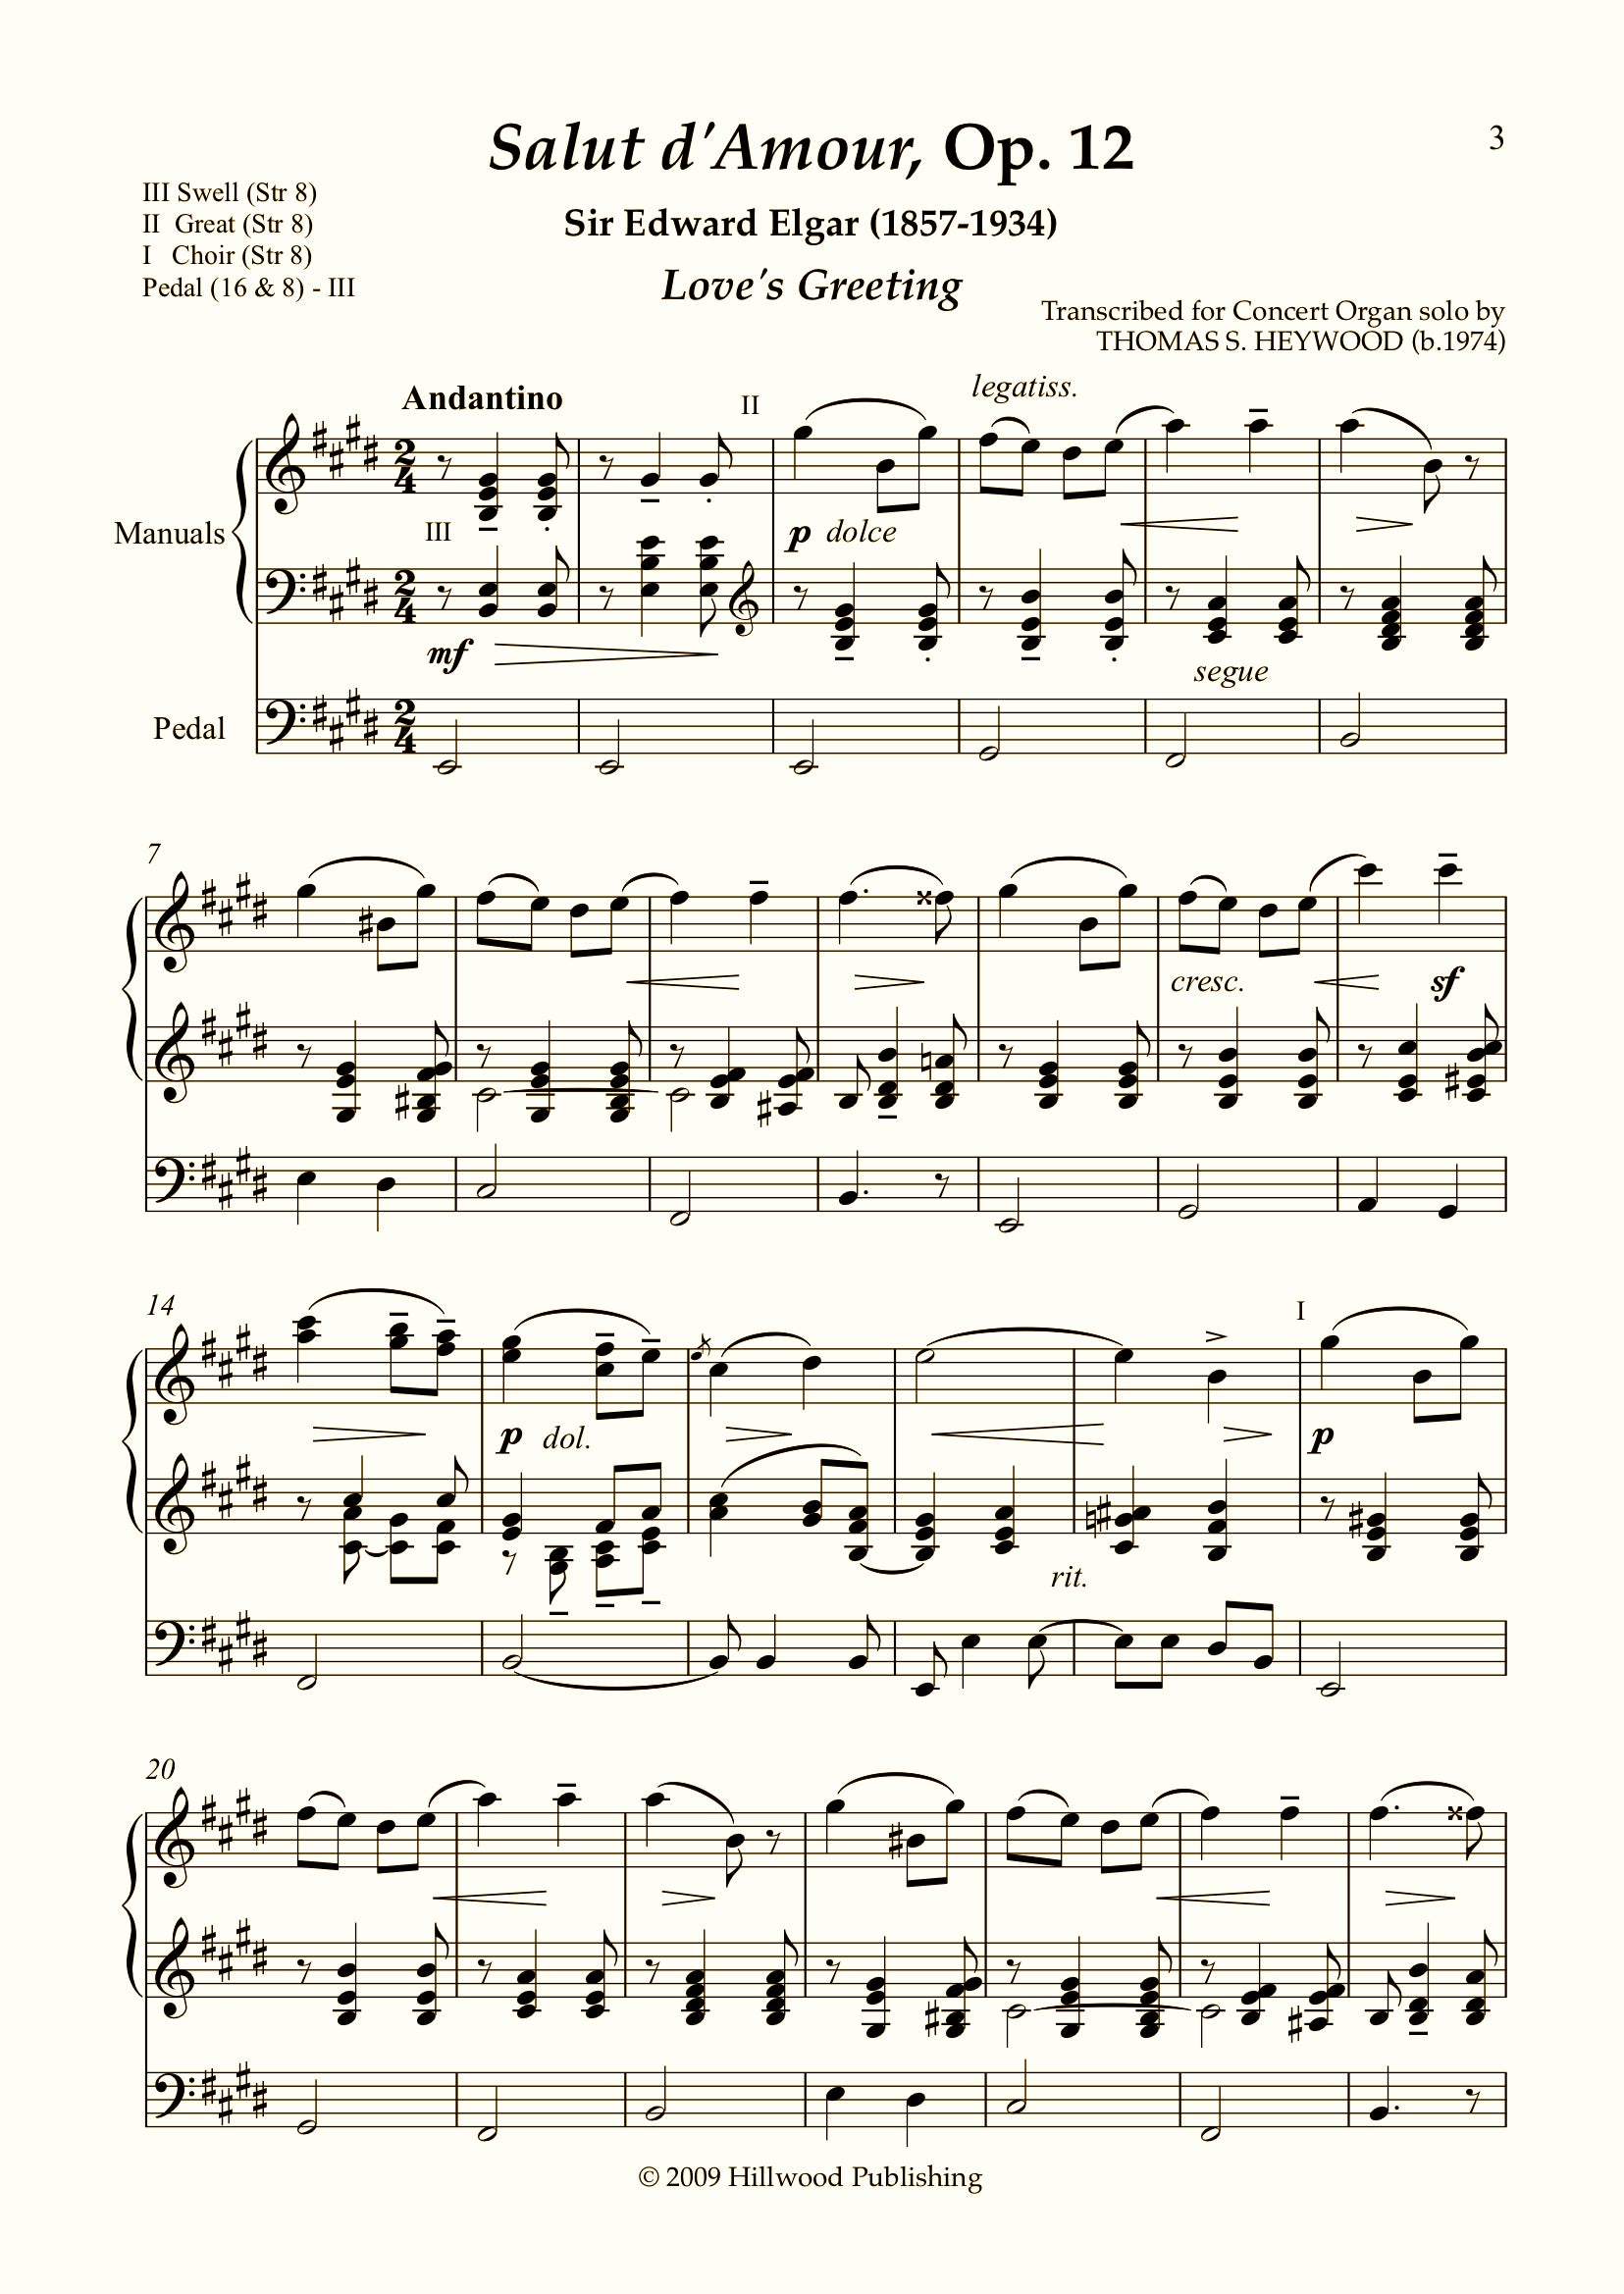 Elgar/Heywood - Salut d'Amour, Op. 12 (Score) | Thomas Heywood | Concert Organ International